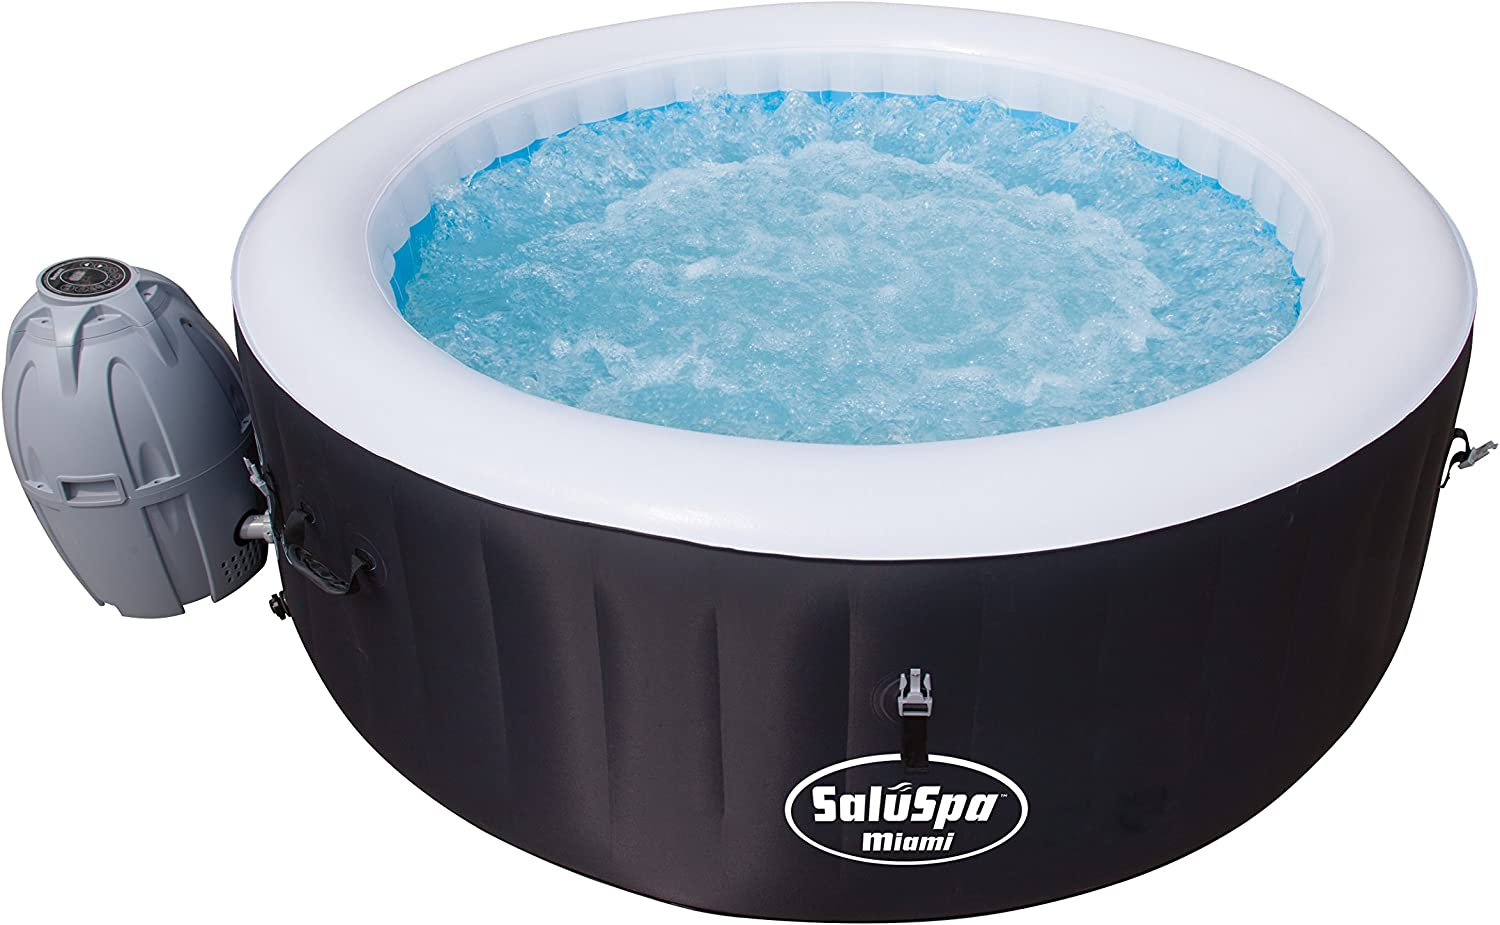 Best Budget Inflatable Hot Tub